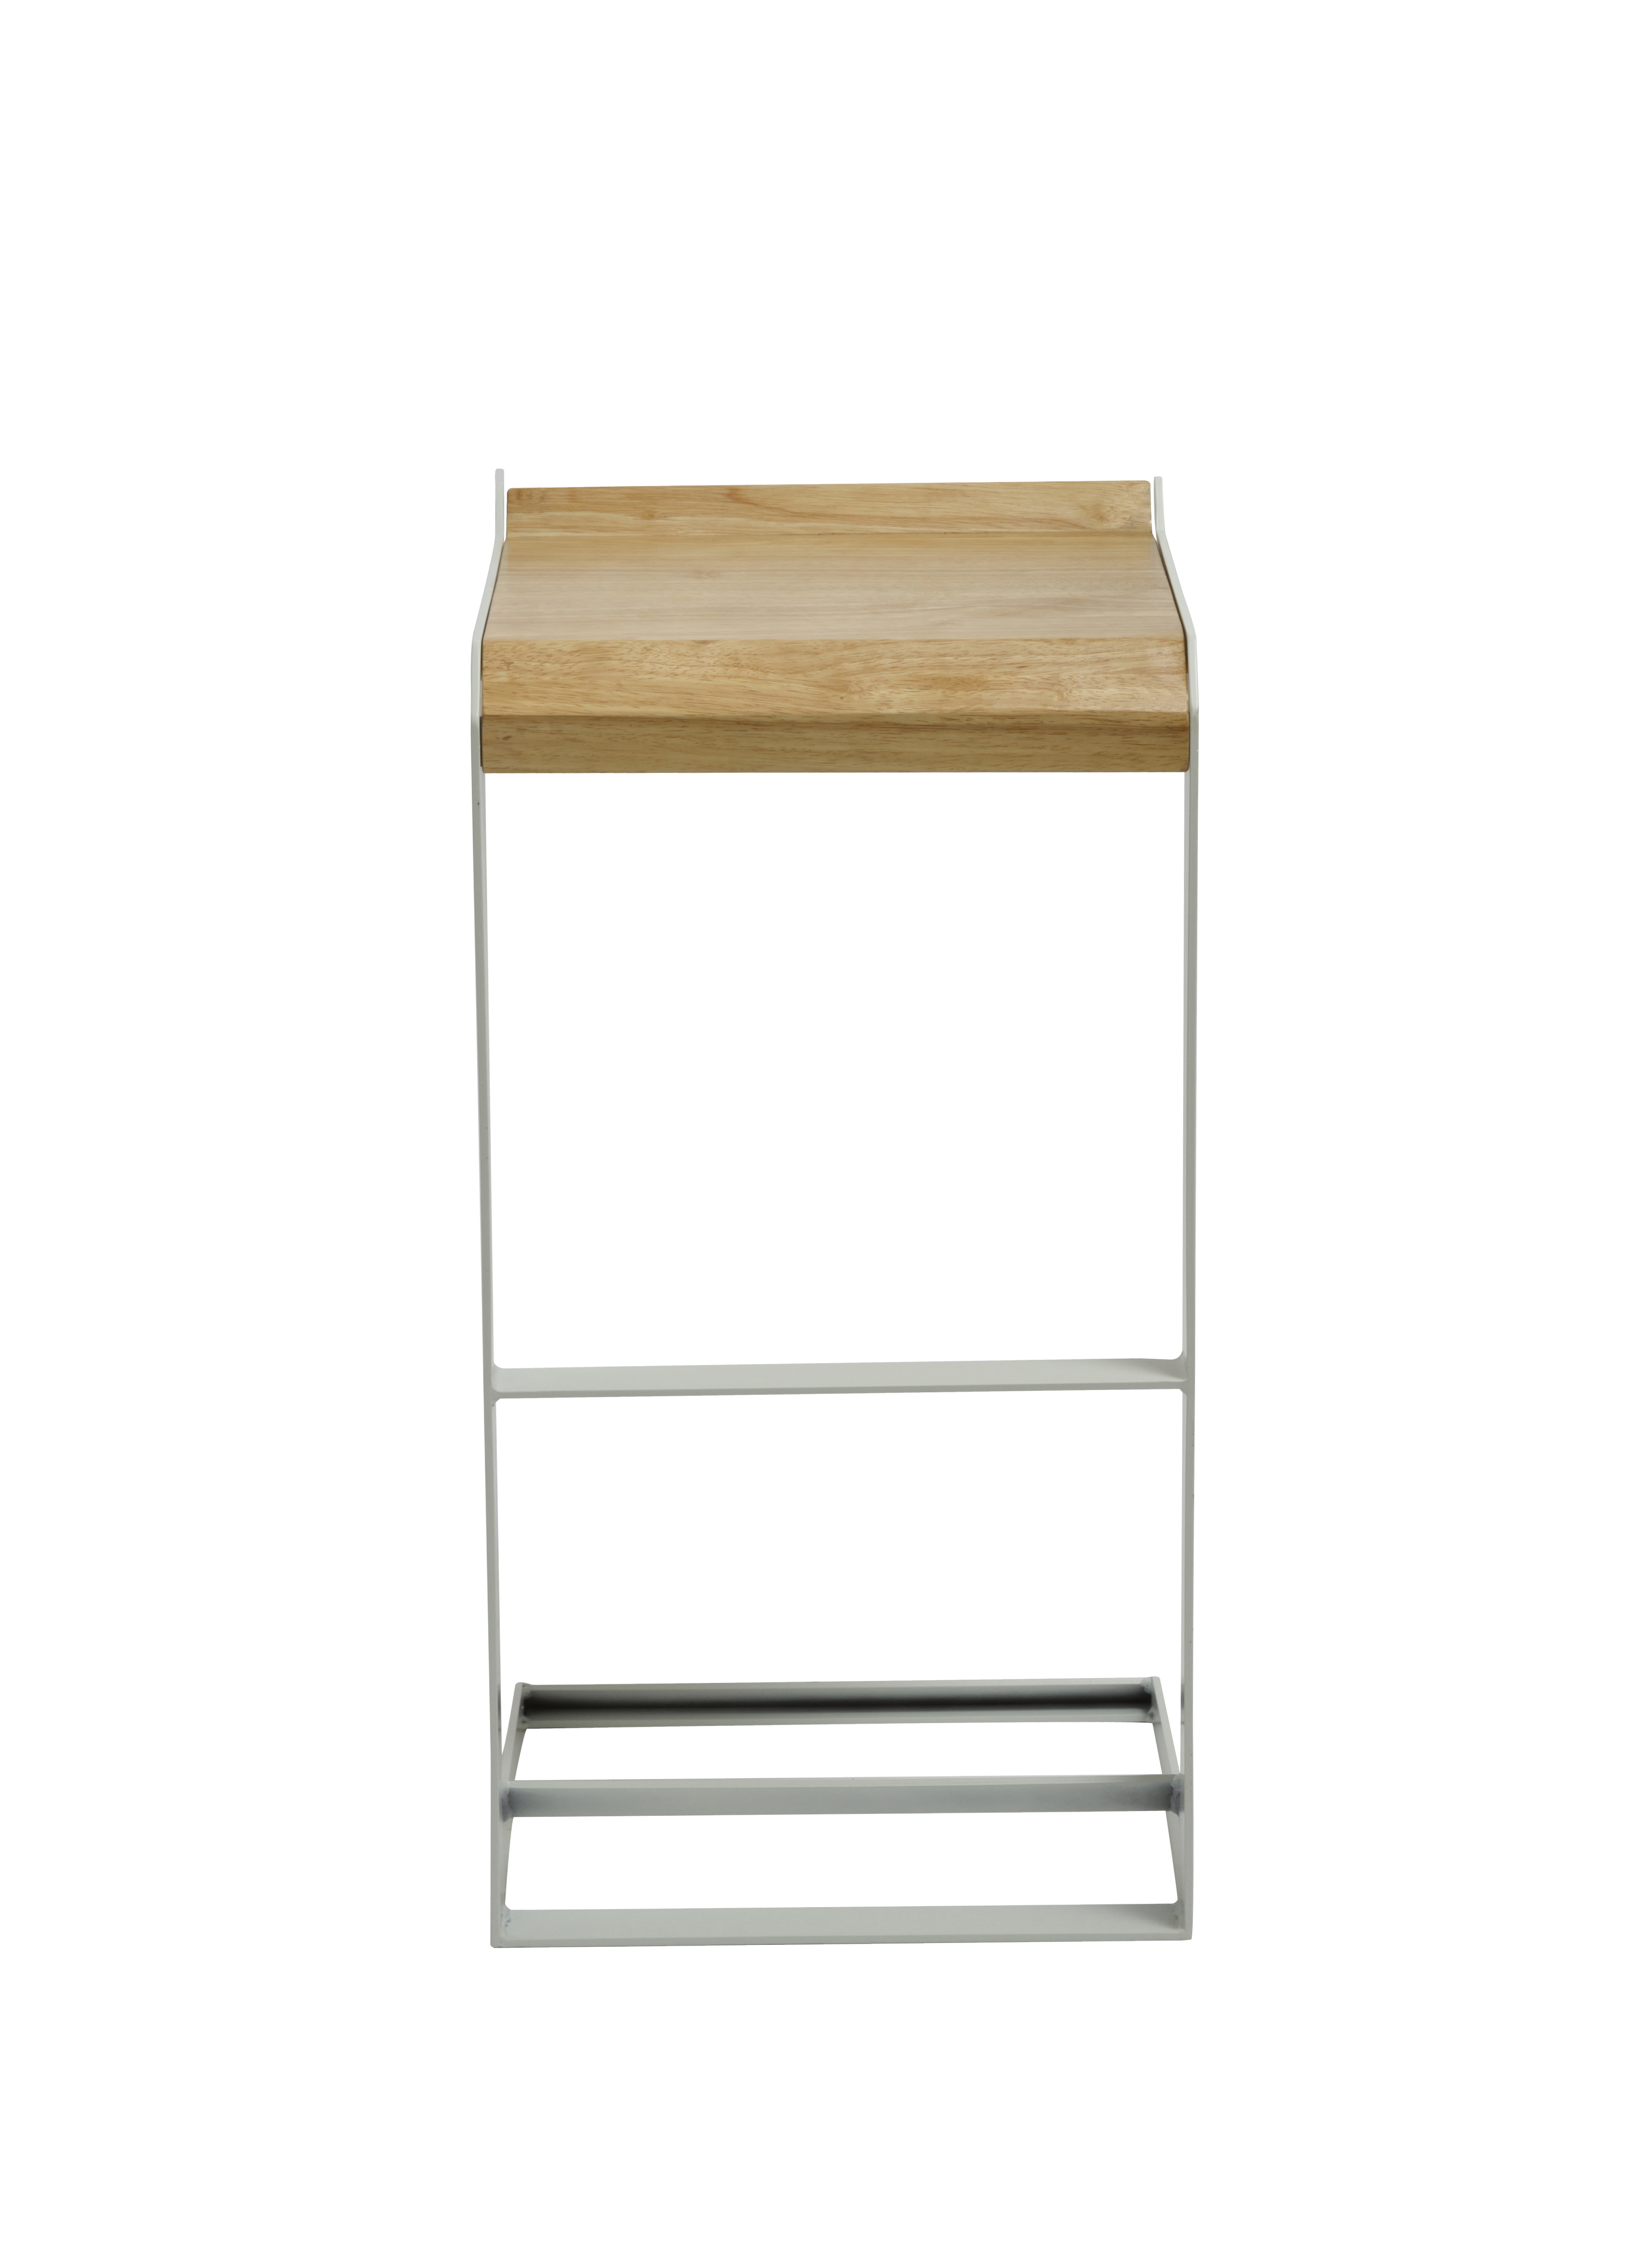 Awe Inspiring Bromi Design Logan Barstool White Caraccident5 Cool Chair Designs And Ideas Caraccident5Info